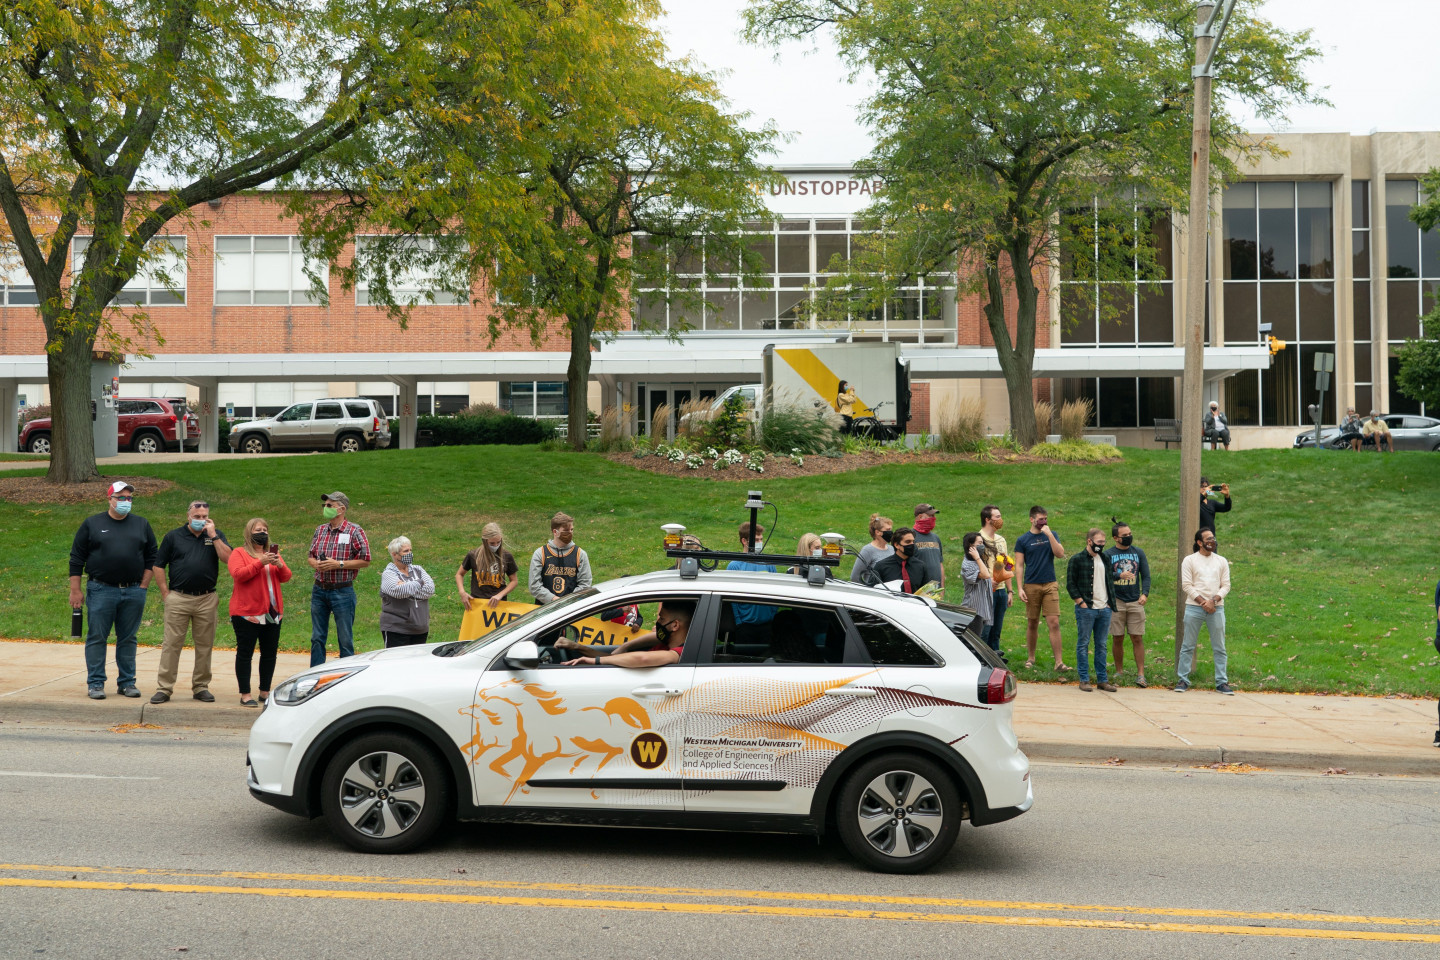 The College of Engineering and Applied Sciences' car drives down the parade route.